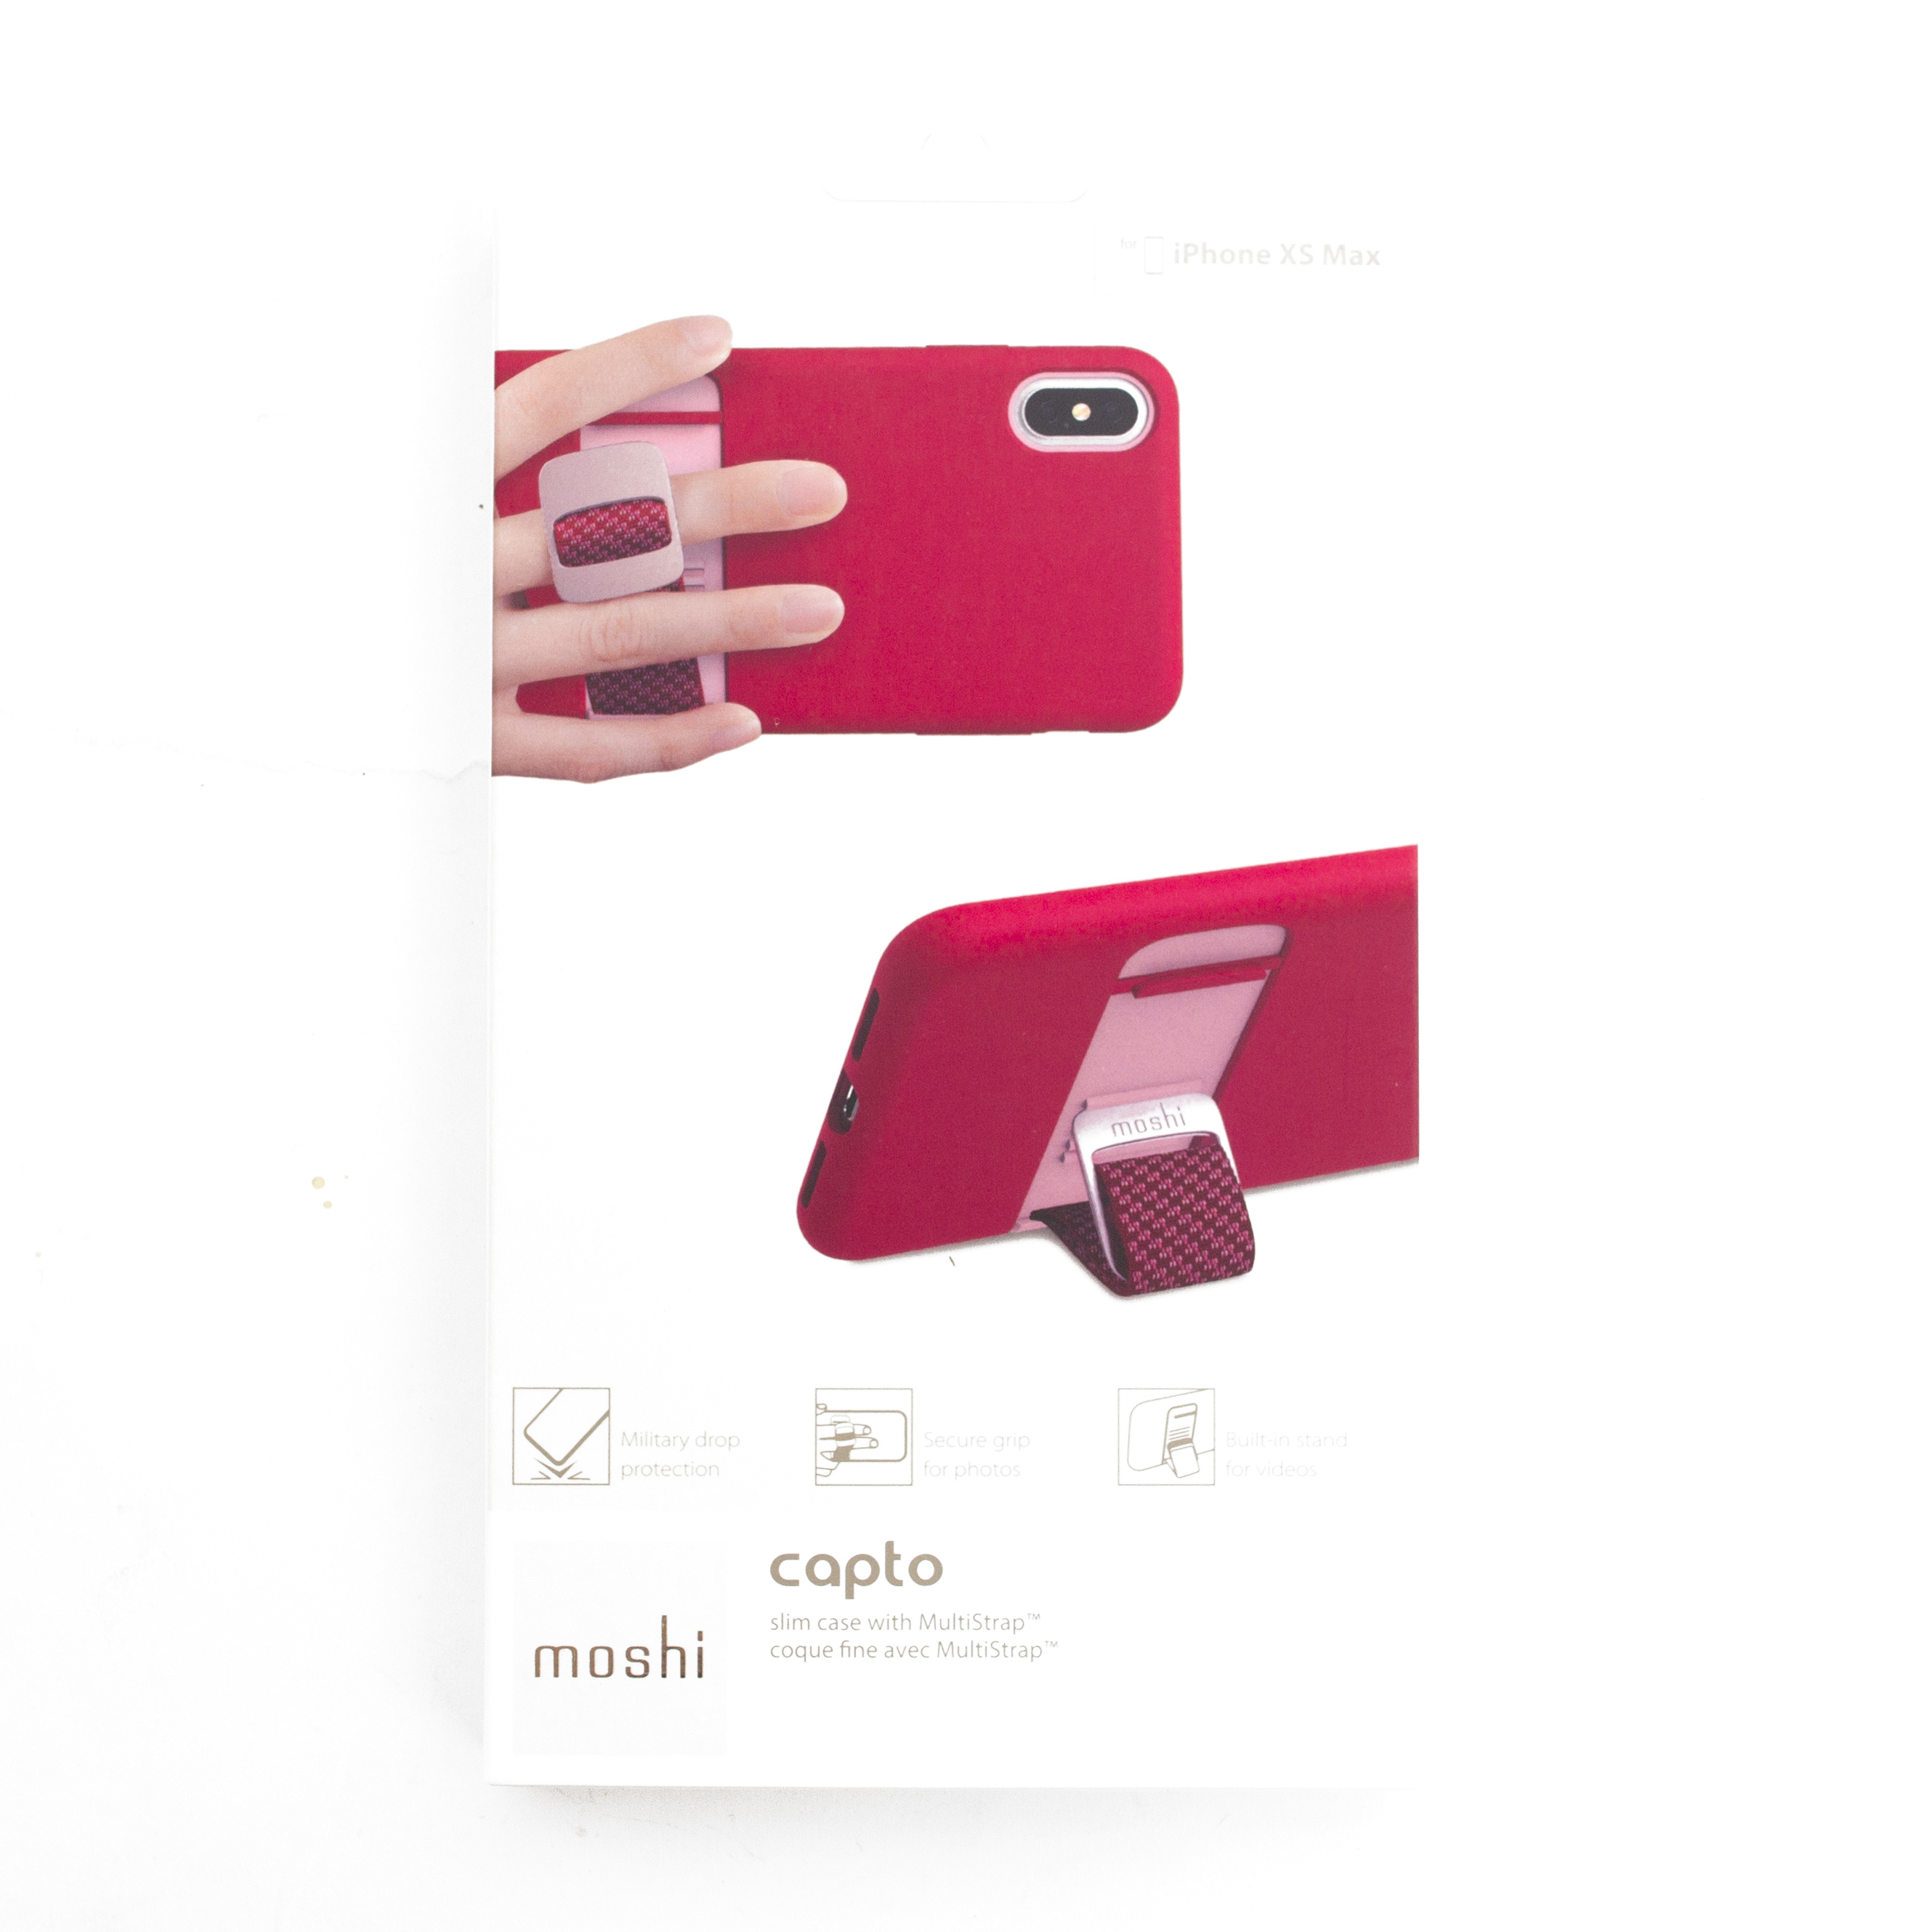 Moshi, Capto, Slim Case, iPhone, Pink